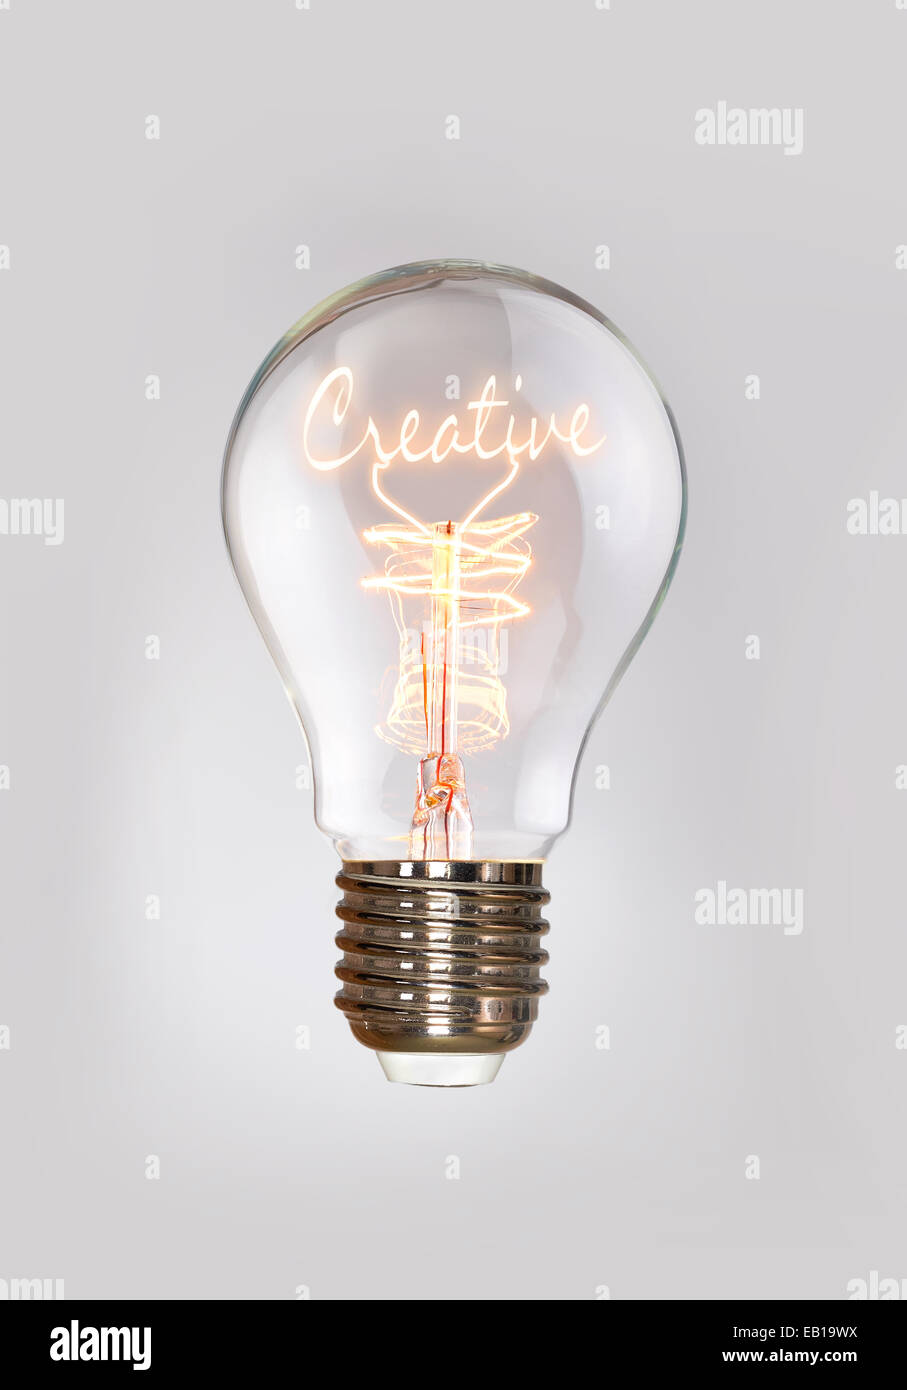 Creative concept in a filament lightbulb. - Stock Image